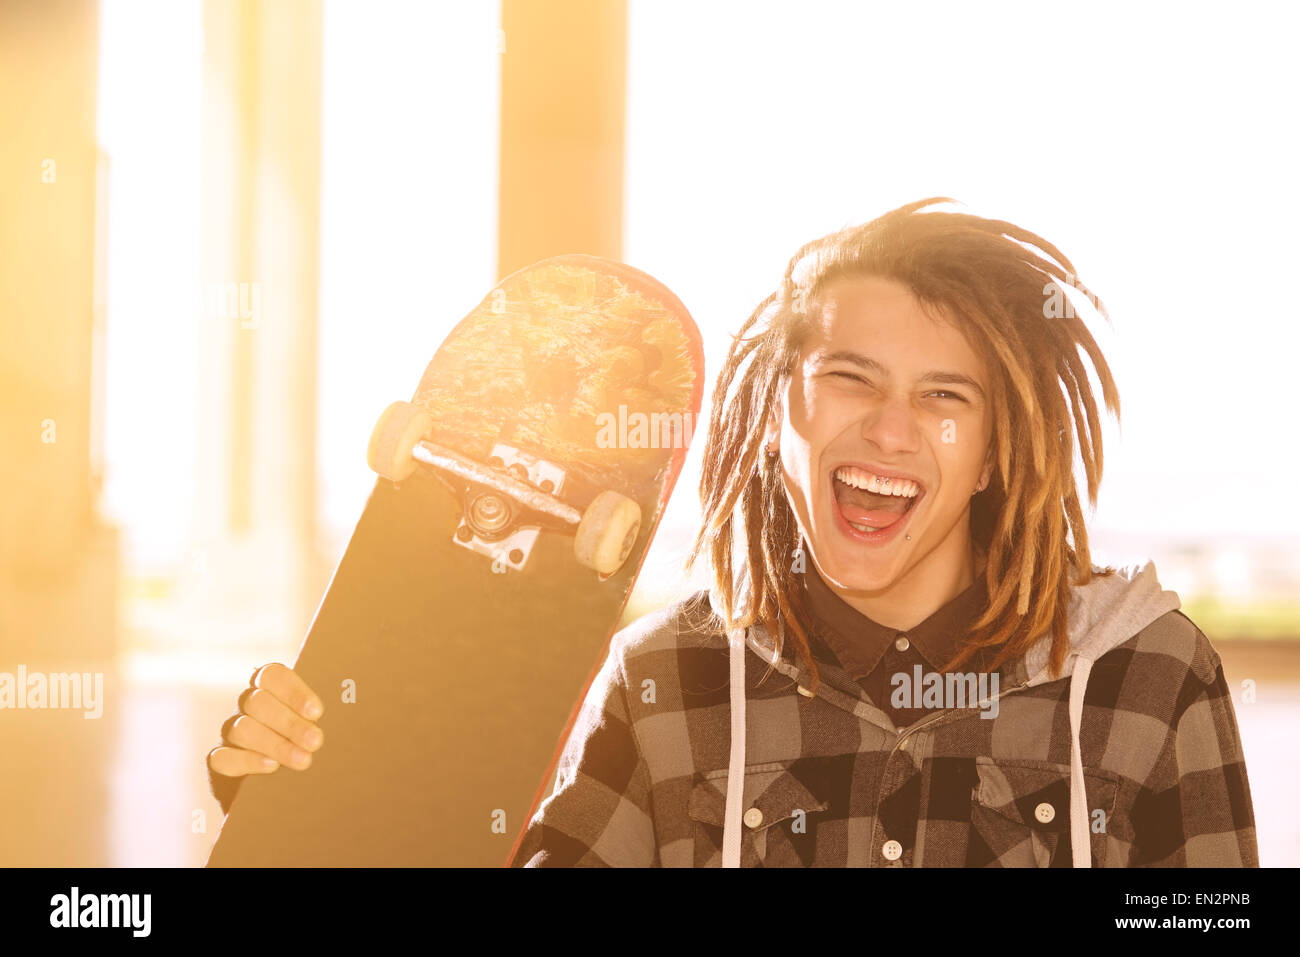 portrait of young guy  with skateboard and rasta hair in a lifestyle concept warm filter applied - Stock Image